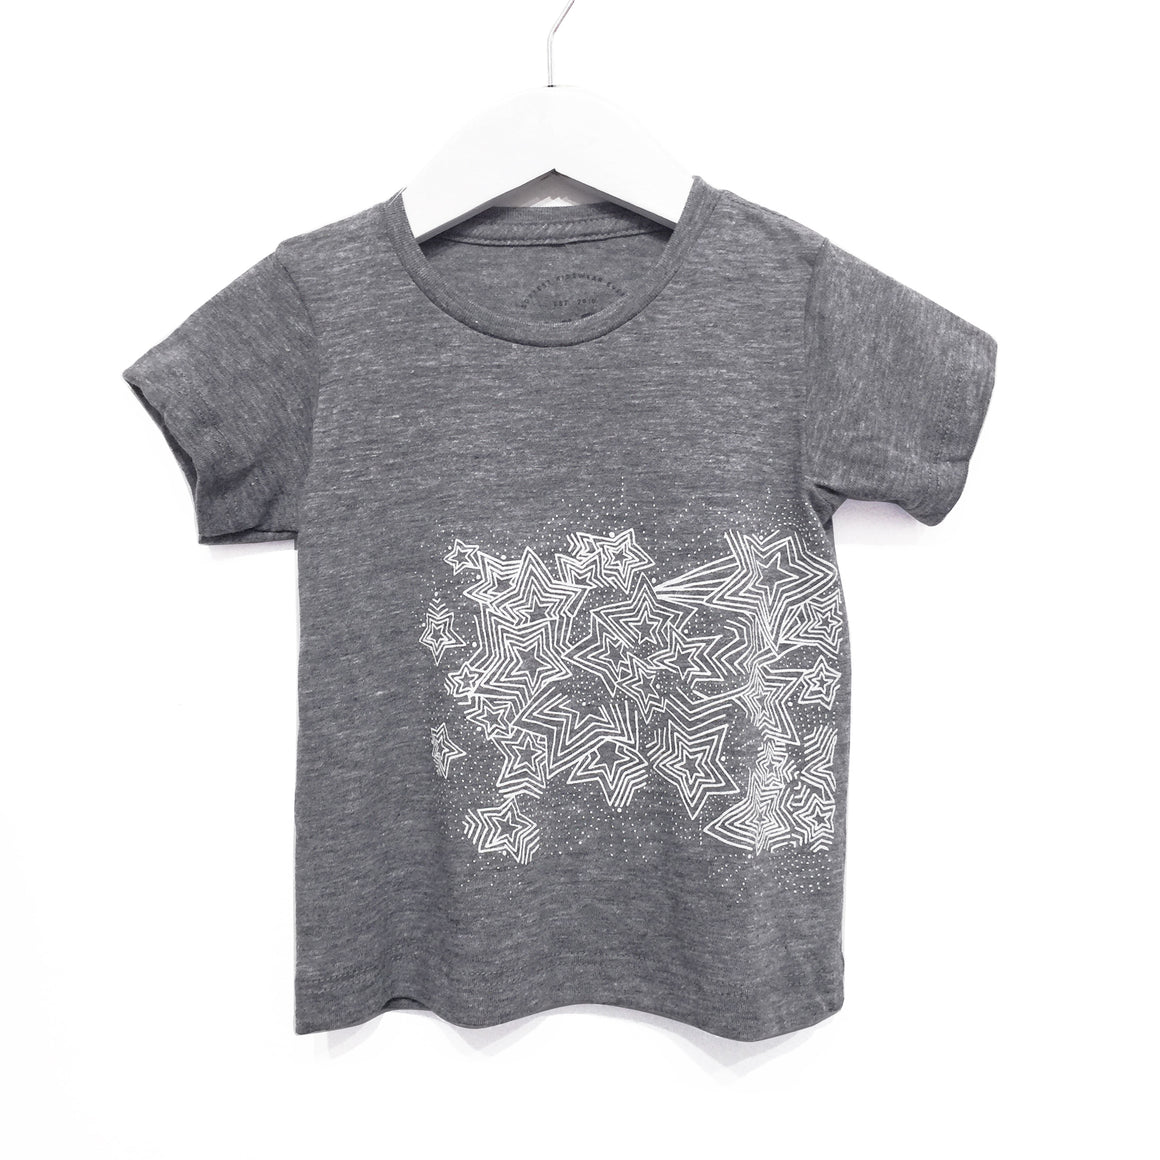 Kira x Coco Kids Star Burst Graphic T-shirt, Heather Grey